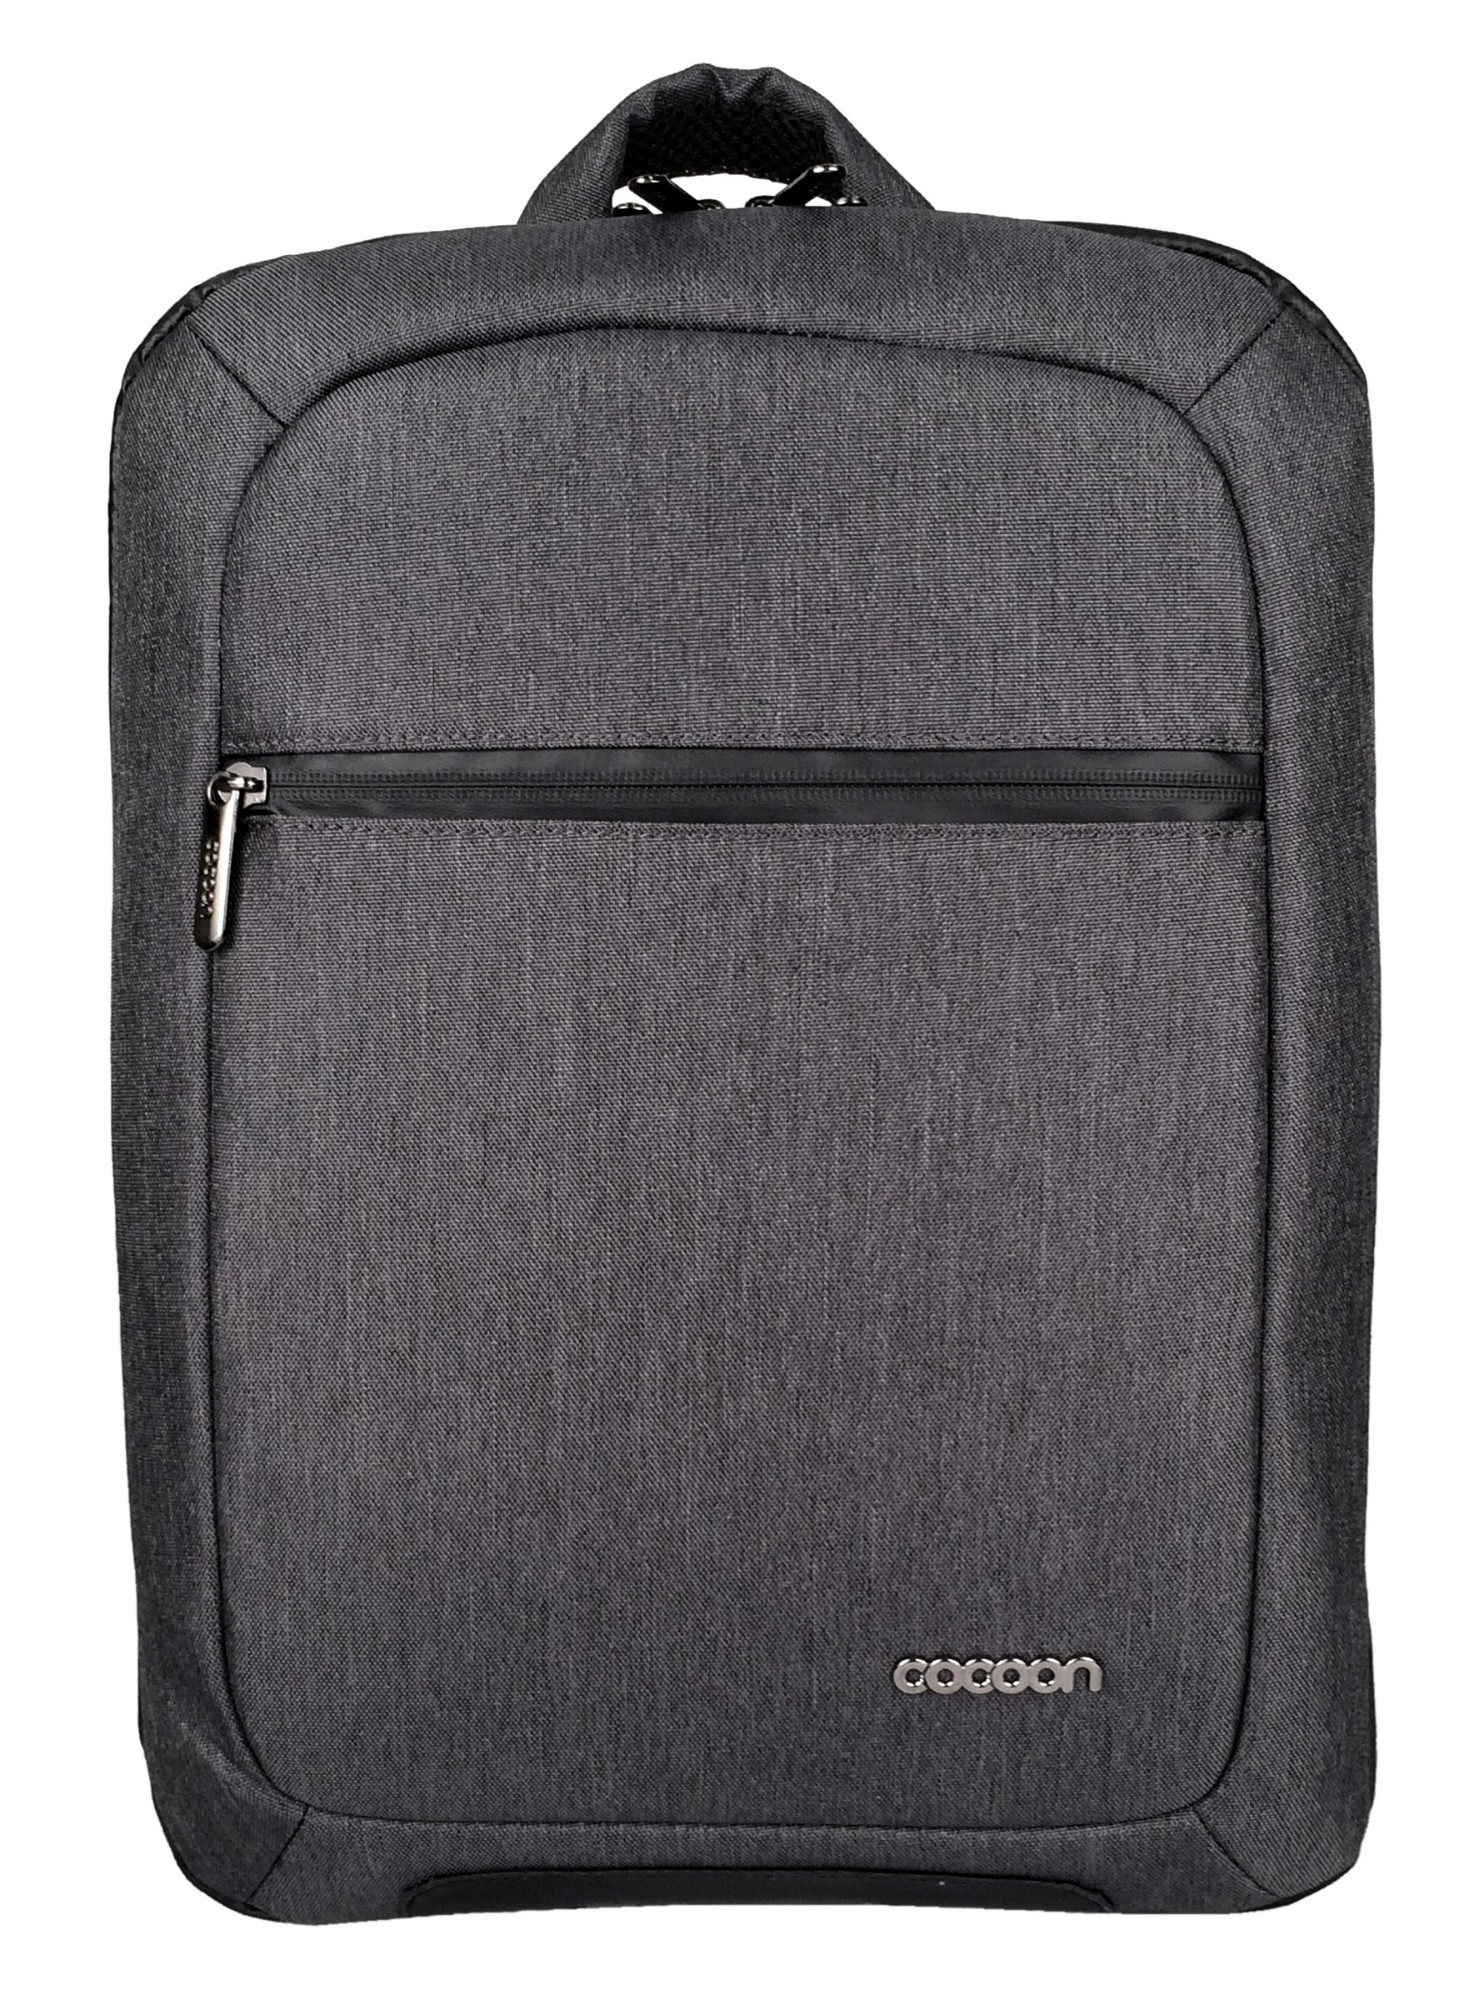 Cocoon SLIM 15 Backpack - Graphite Gray